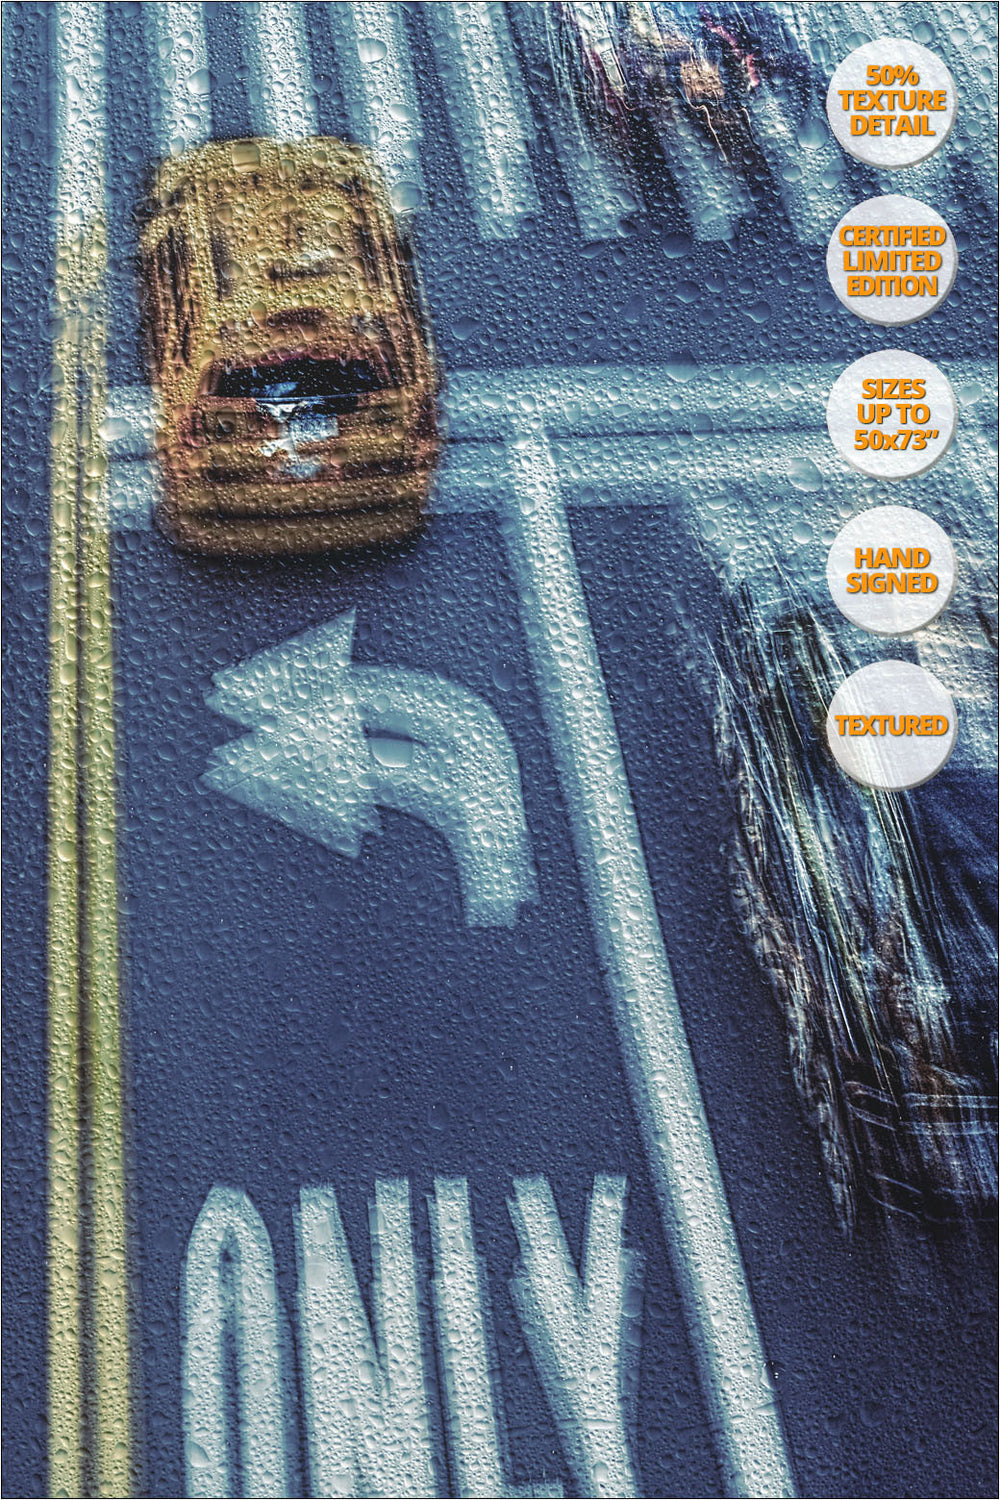 Taxis under the Rain, New York. | View of the Print at 50% magnification detail.